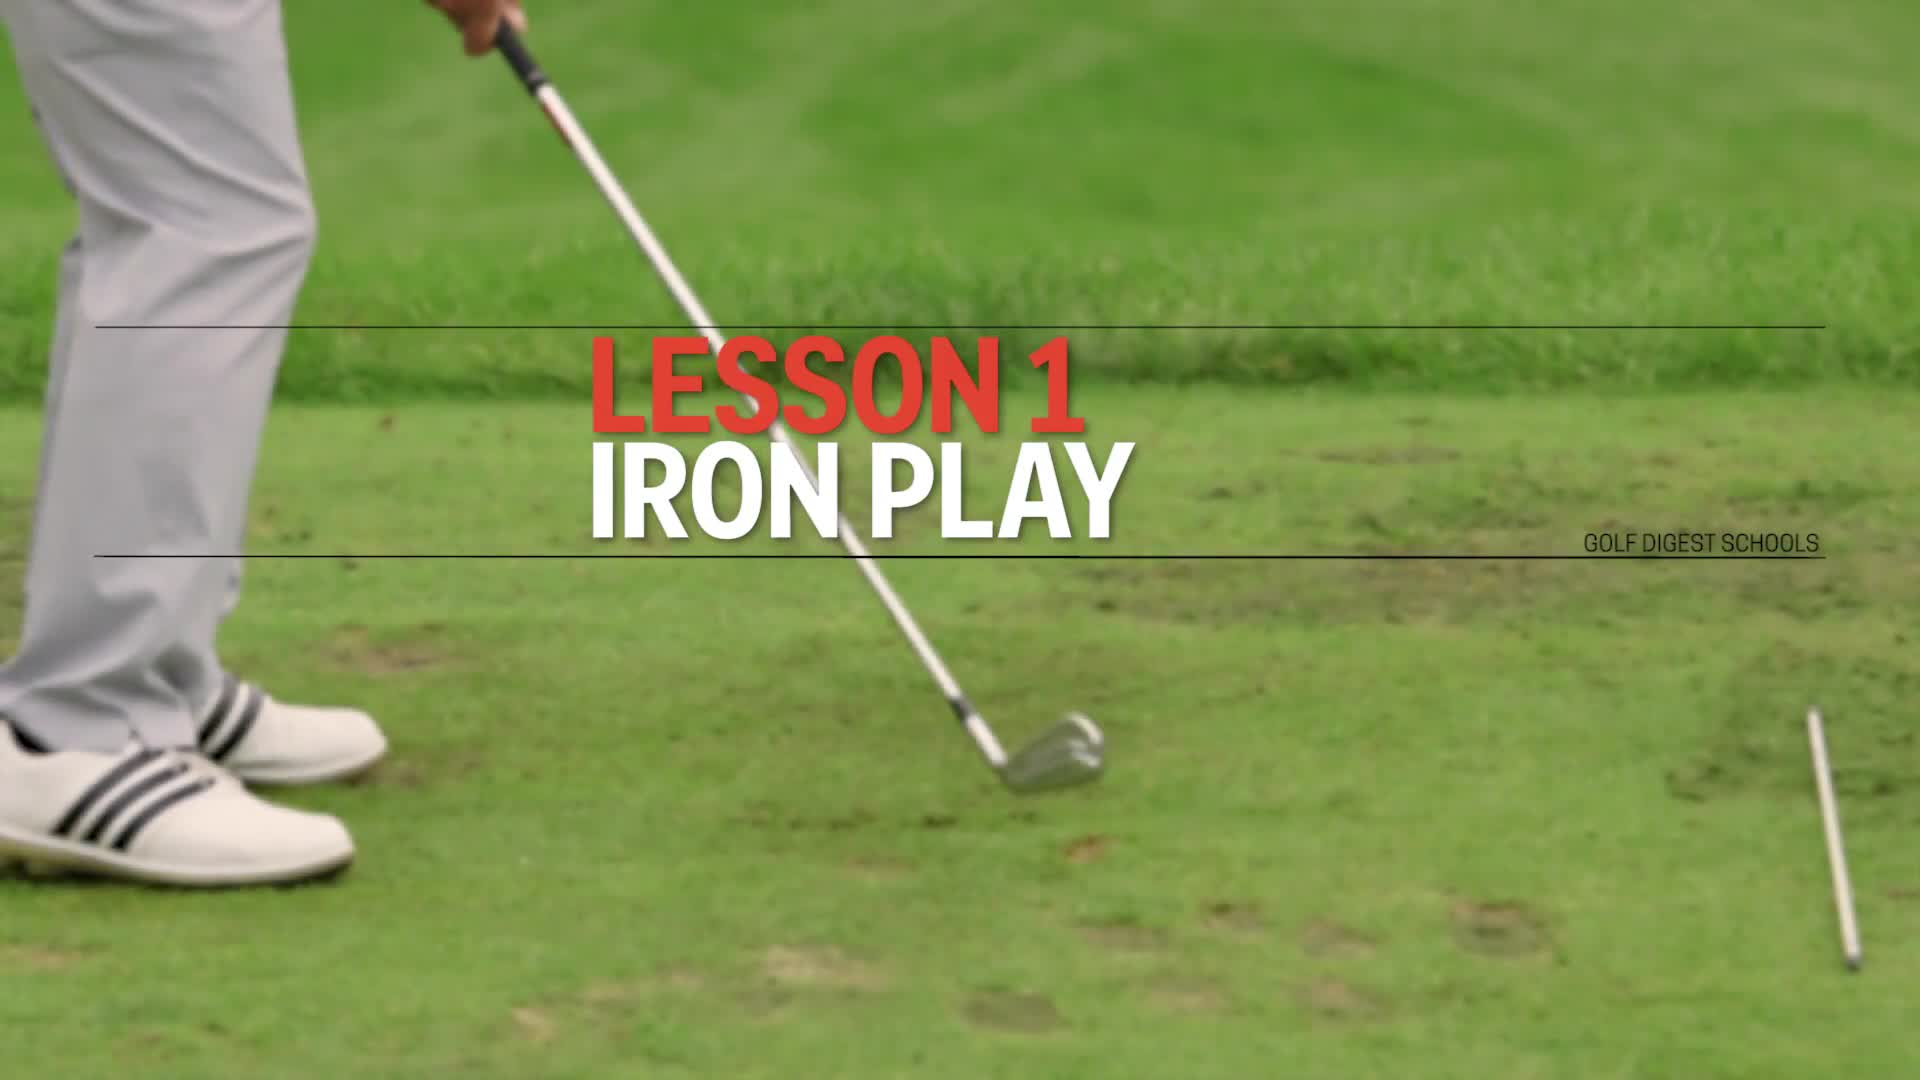 Lesson 1: Iron Play